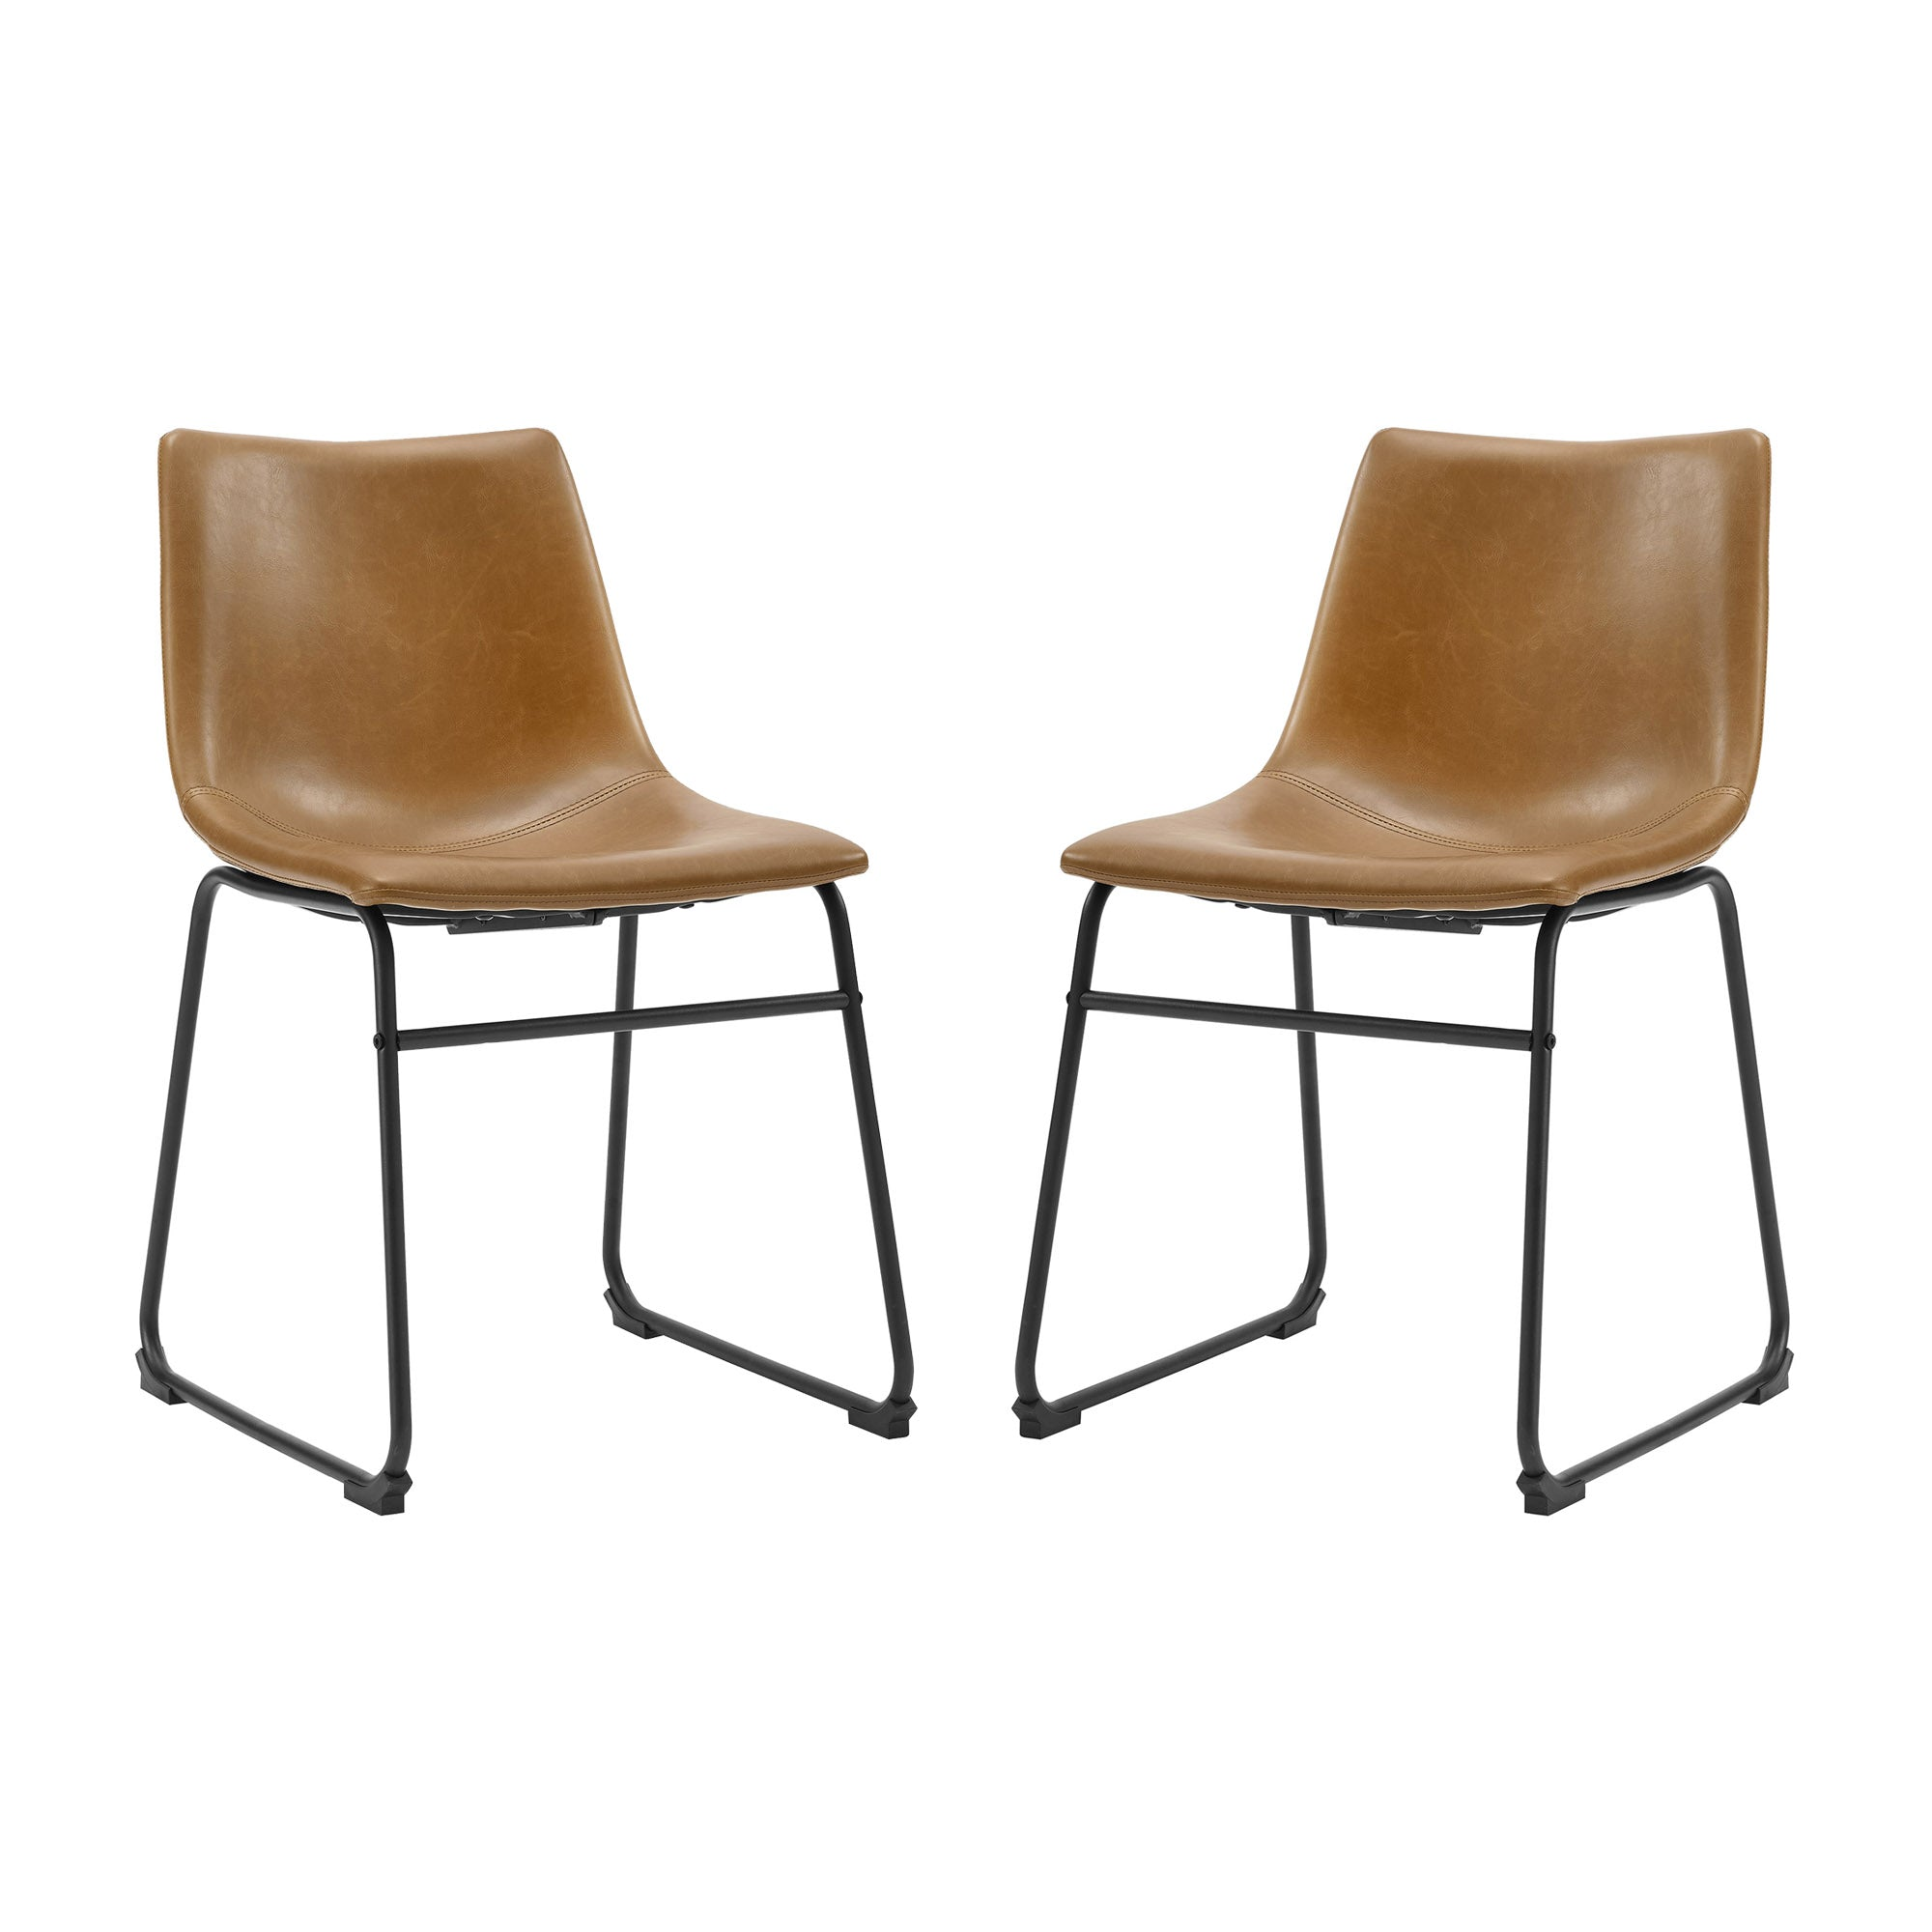 "18"" Faux Leather Dining Chair 2 pack - Whiskey Brown"